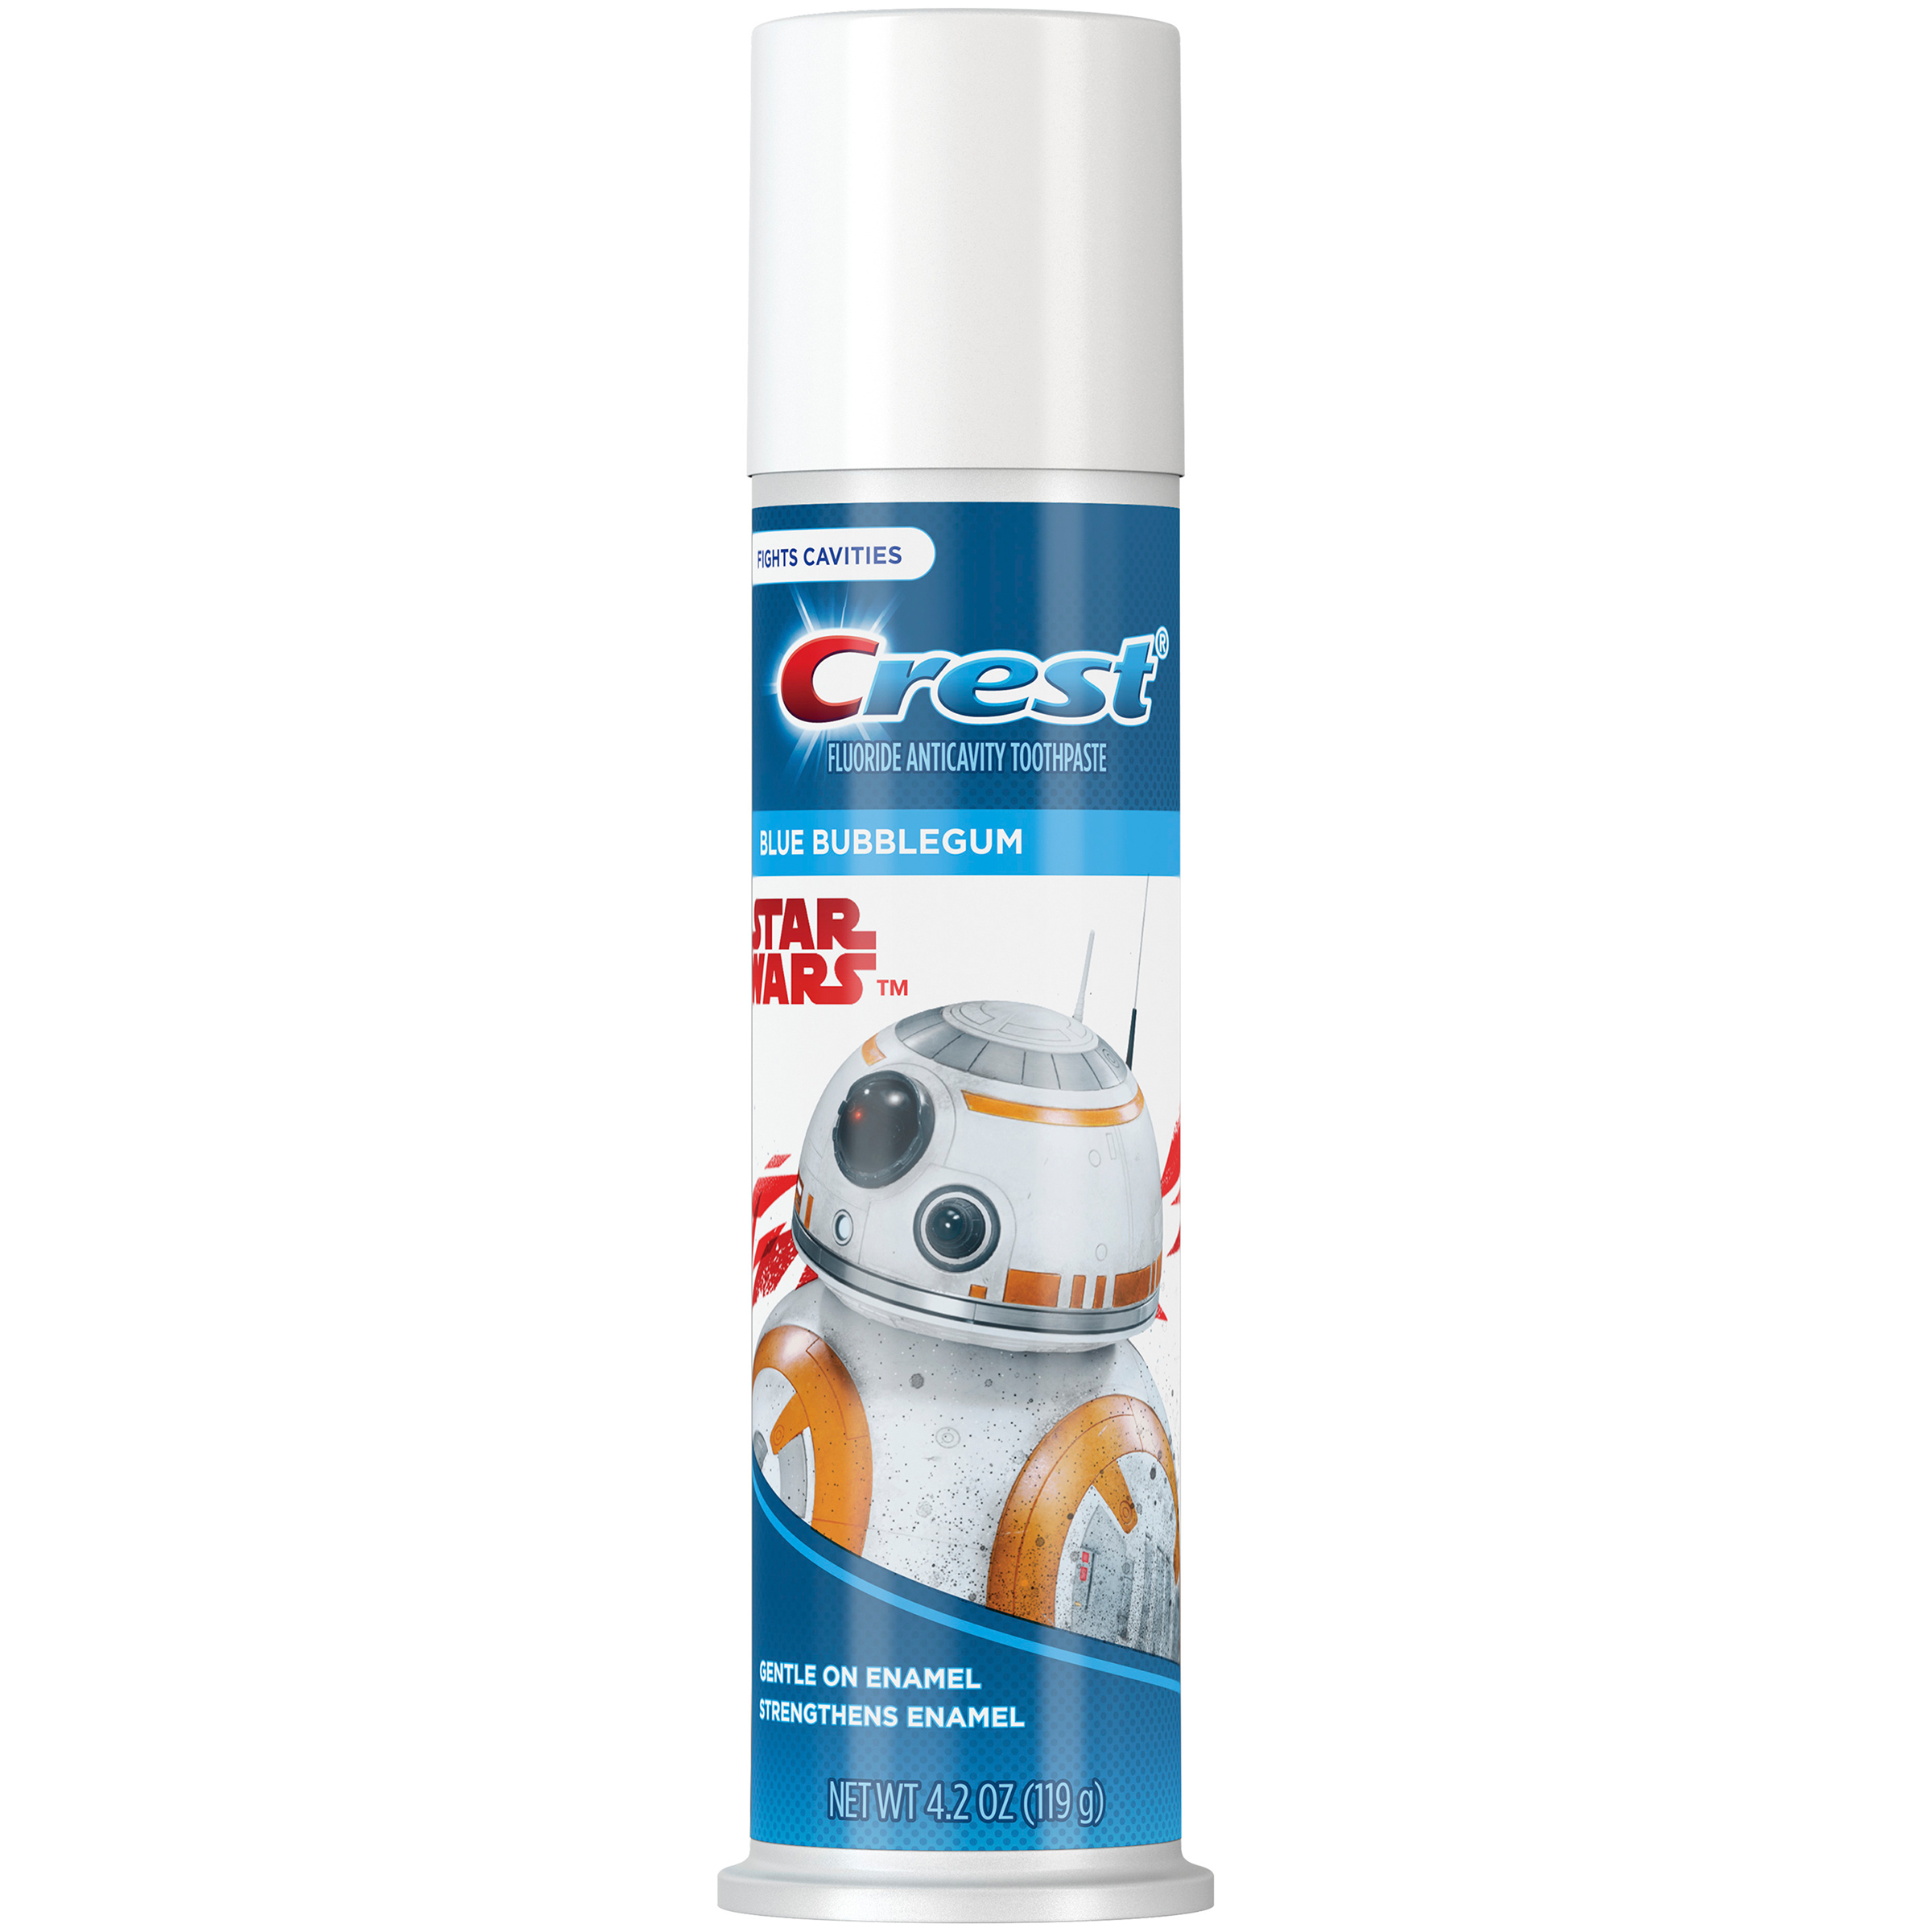 (2 pack) Crest Kid's Toothpaste Featuring Disney's STAR WARS (children and toddlers 2+), Bubblegum, 4.2 ounces